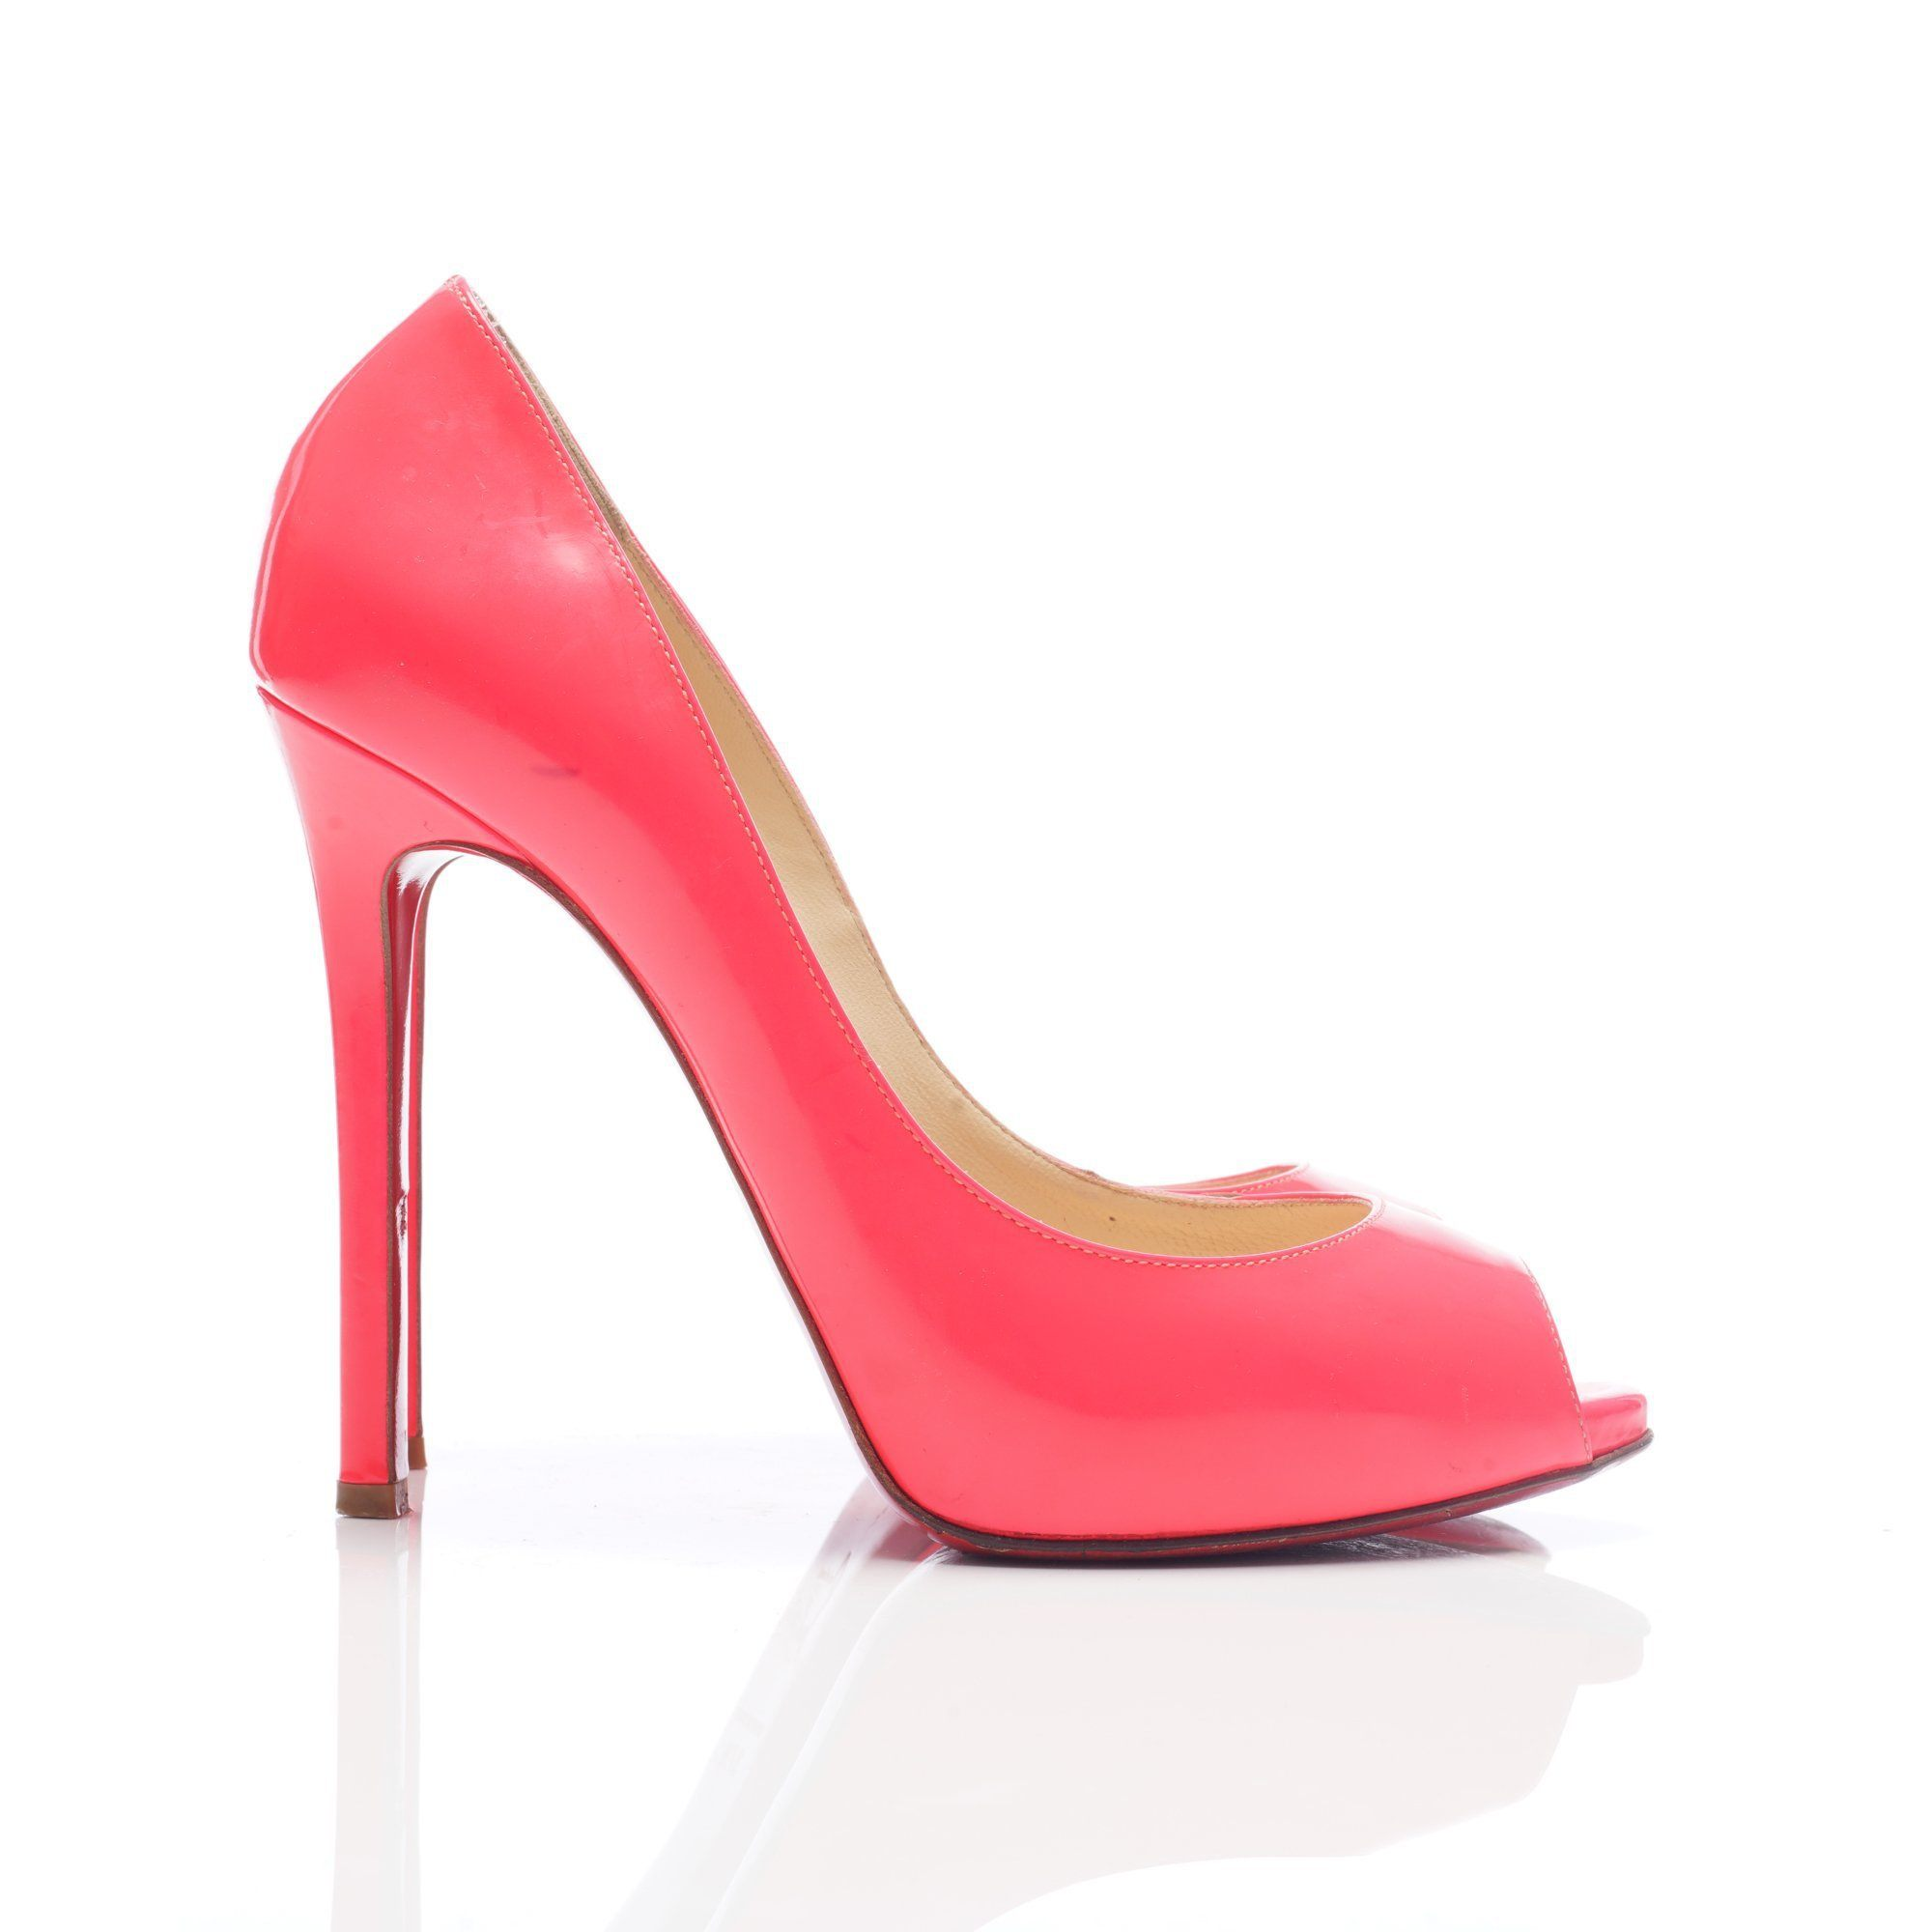 Christian Louboutin Flo Pumps in Rose Paris